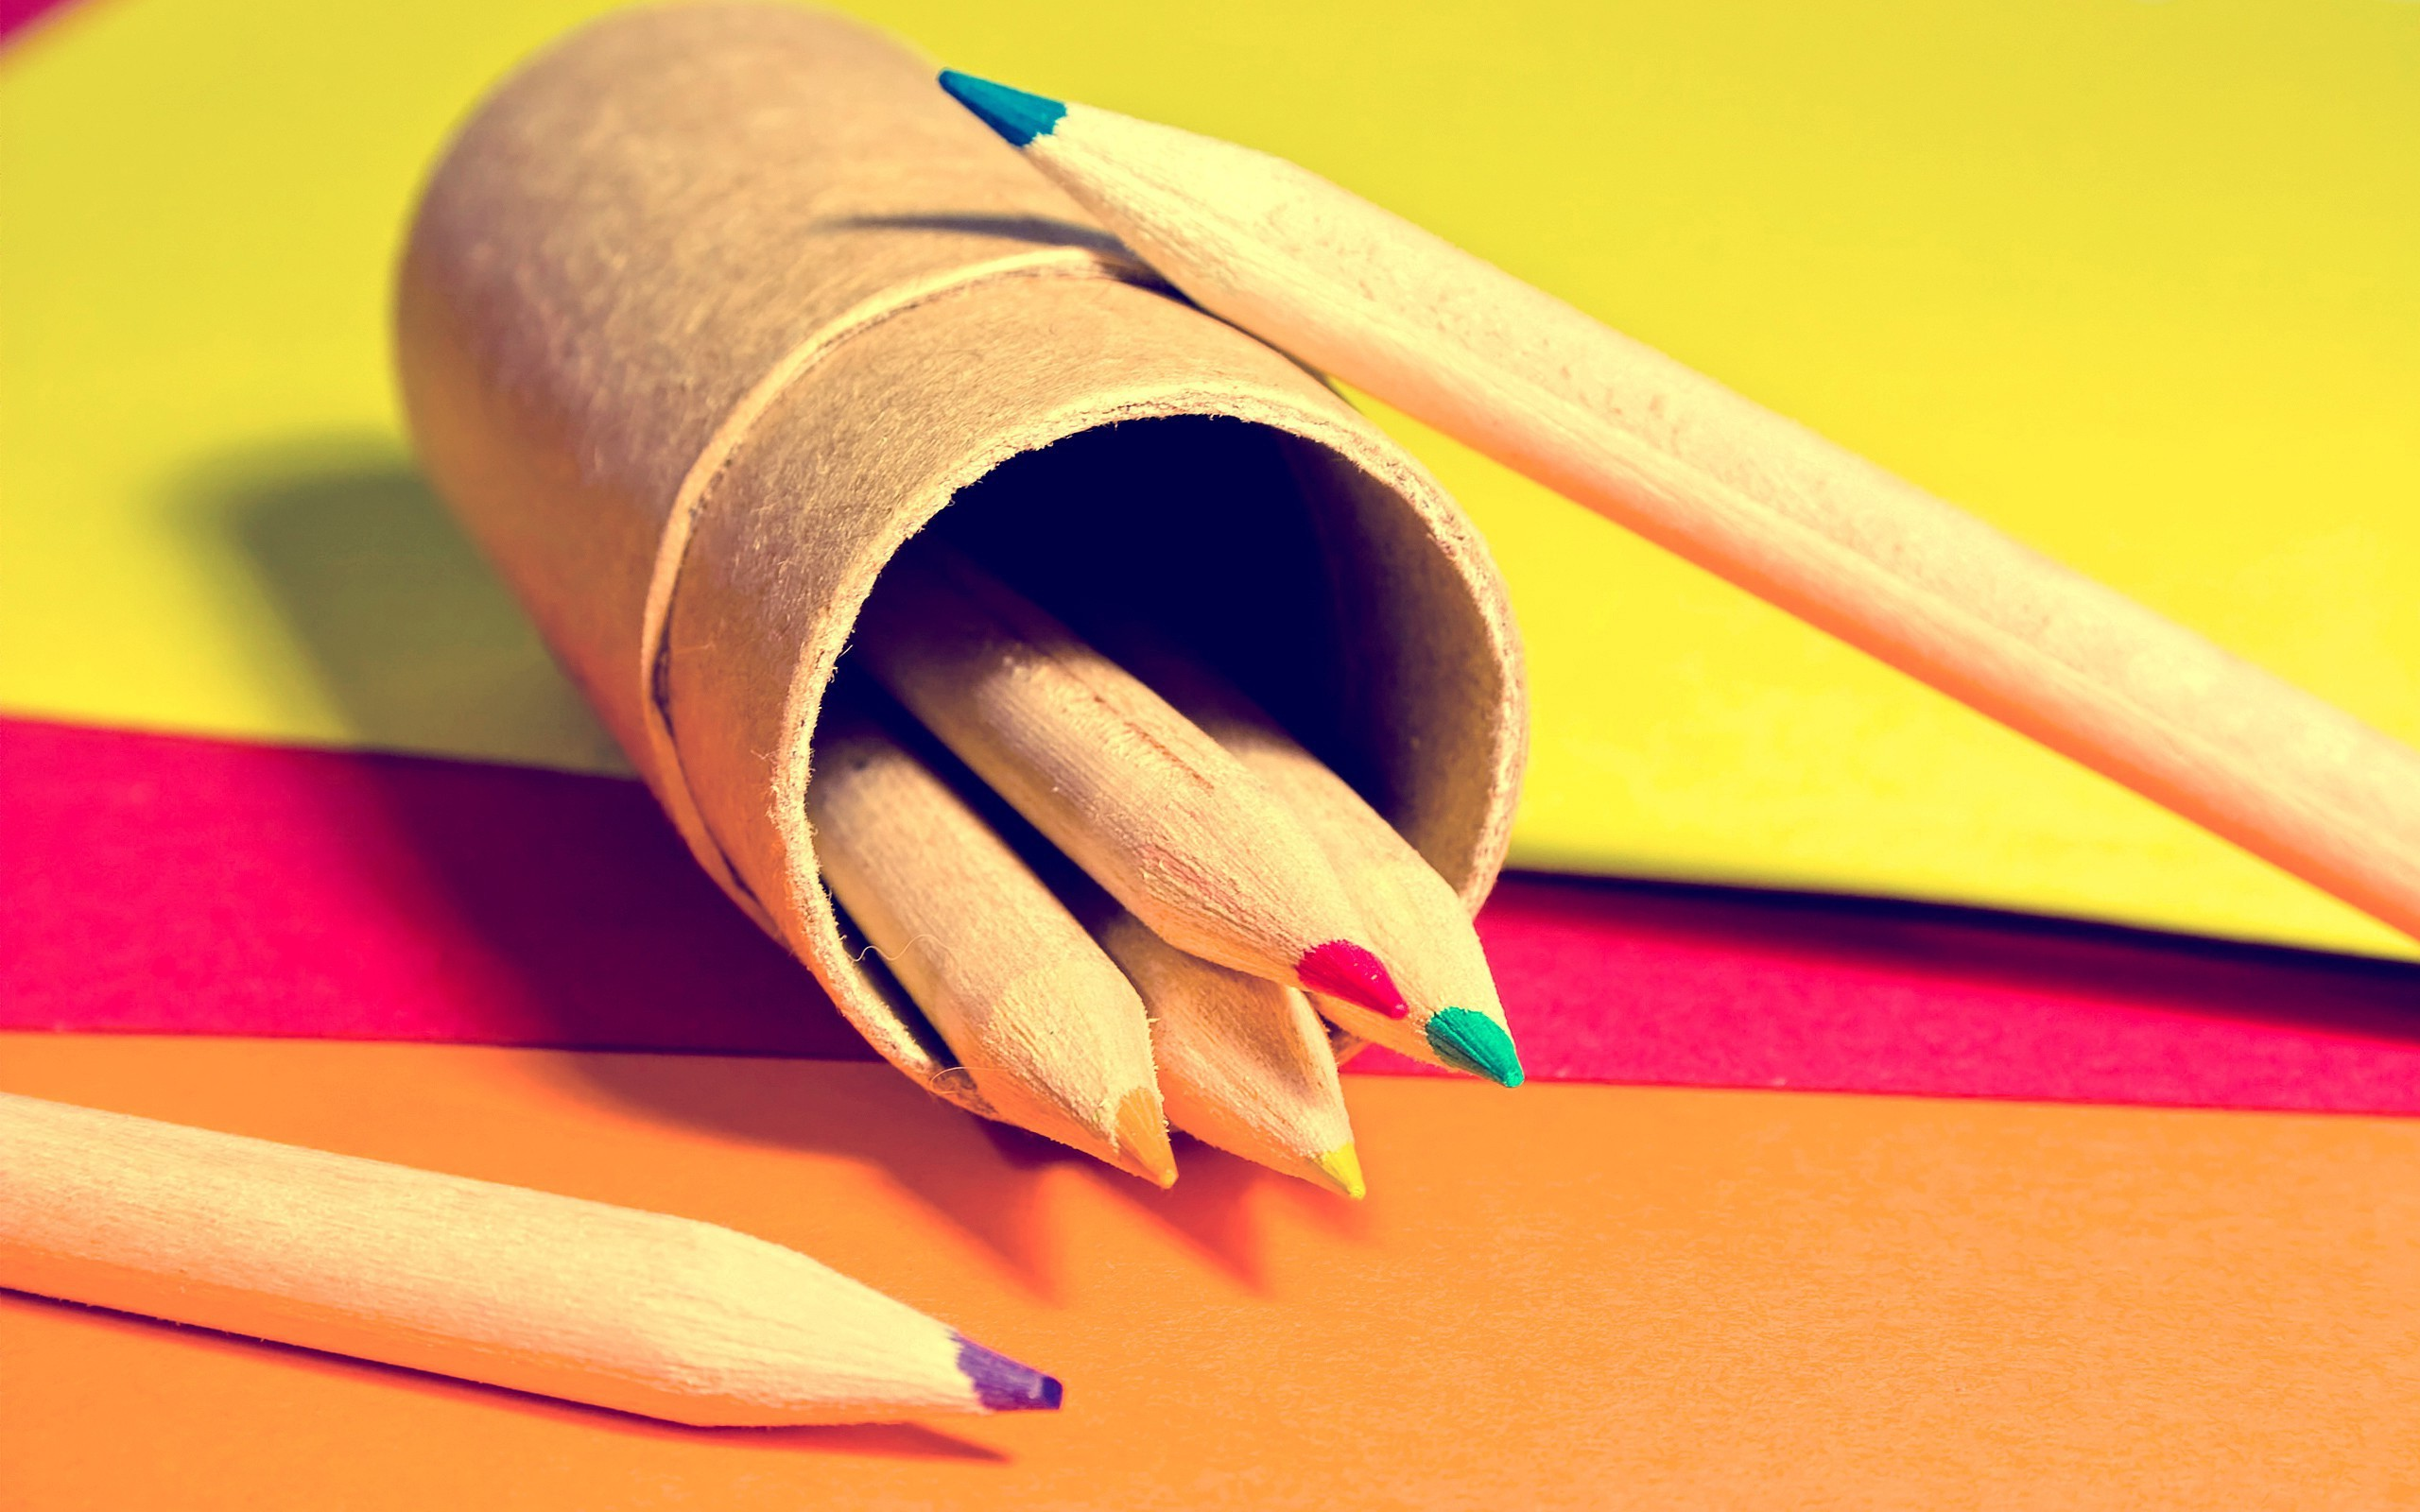 2560x1600 Colored Pencils wallpapers and stock photos